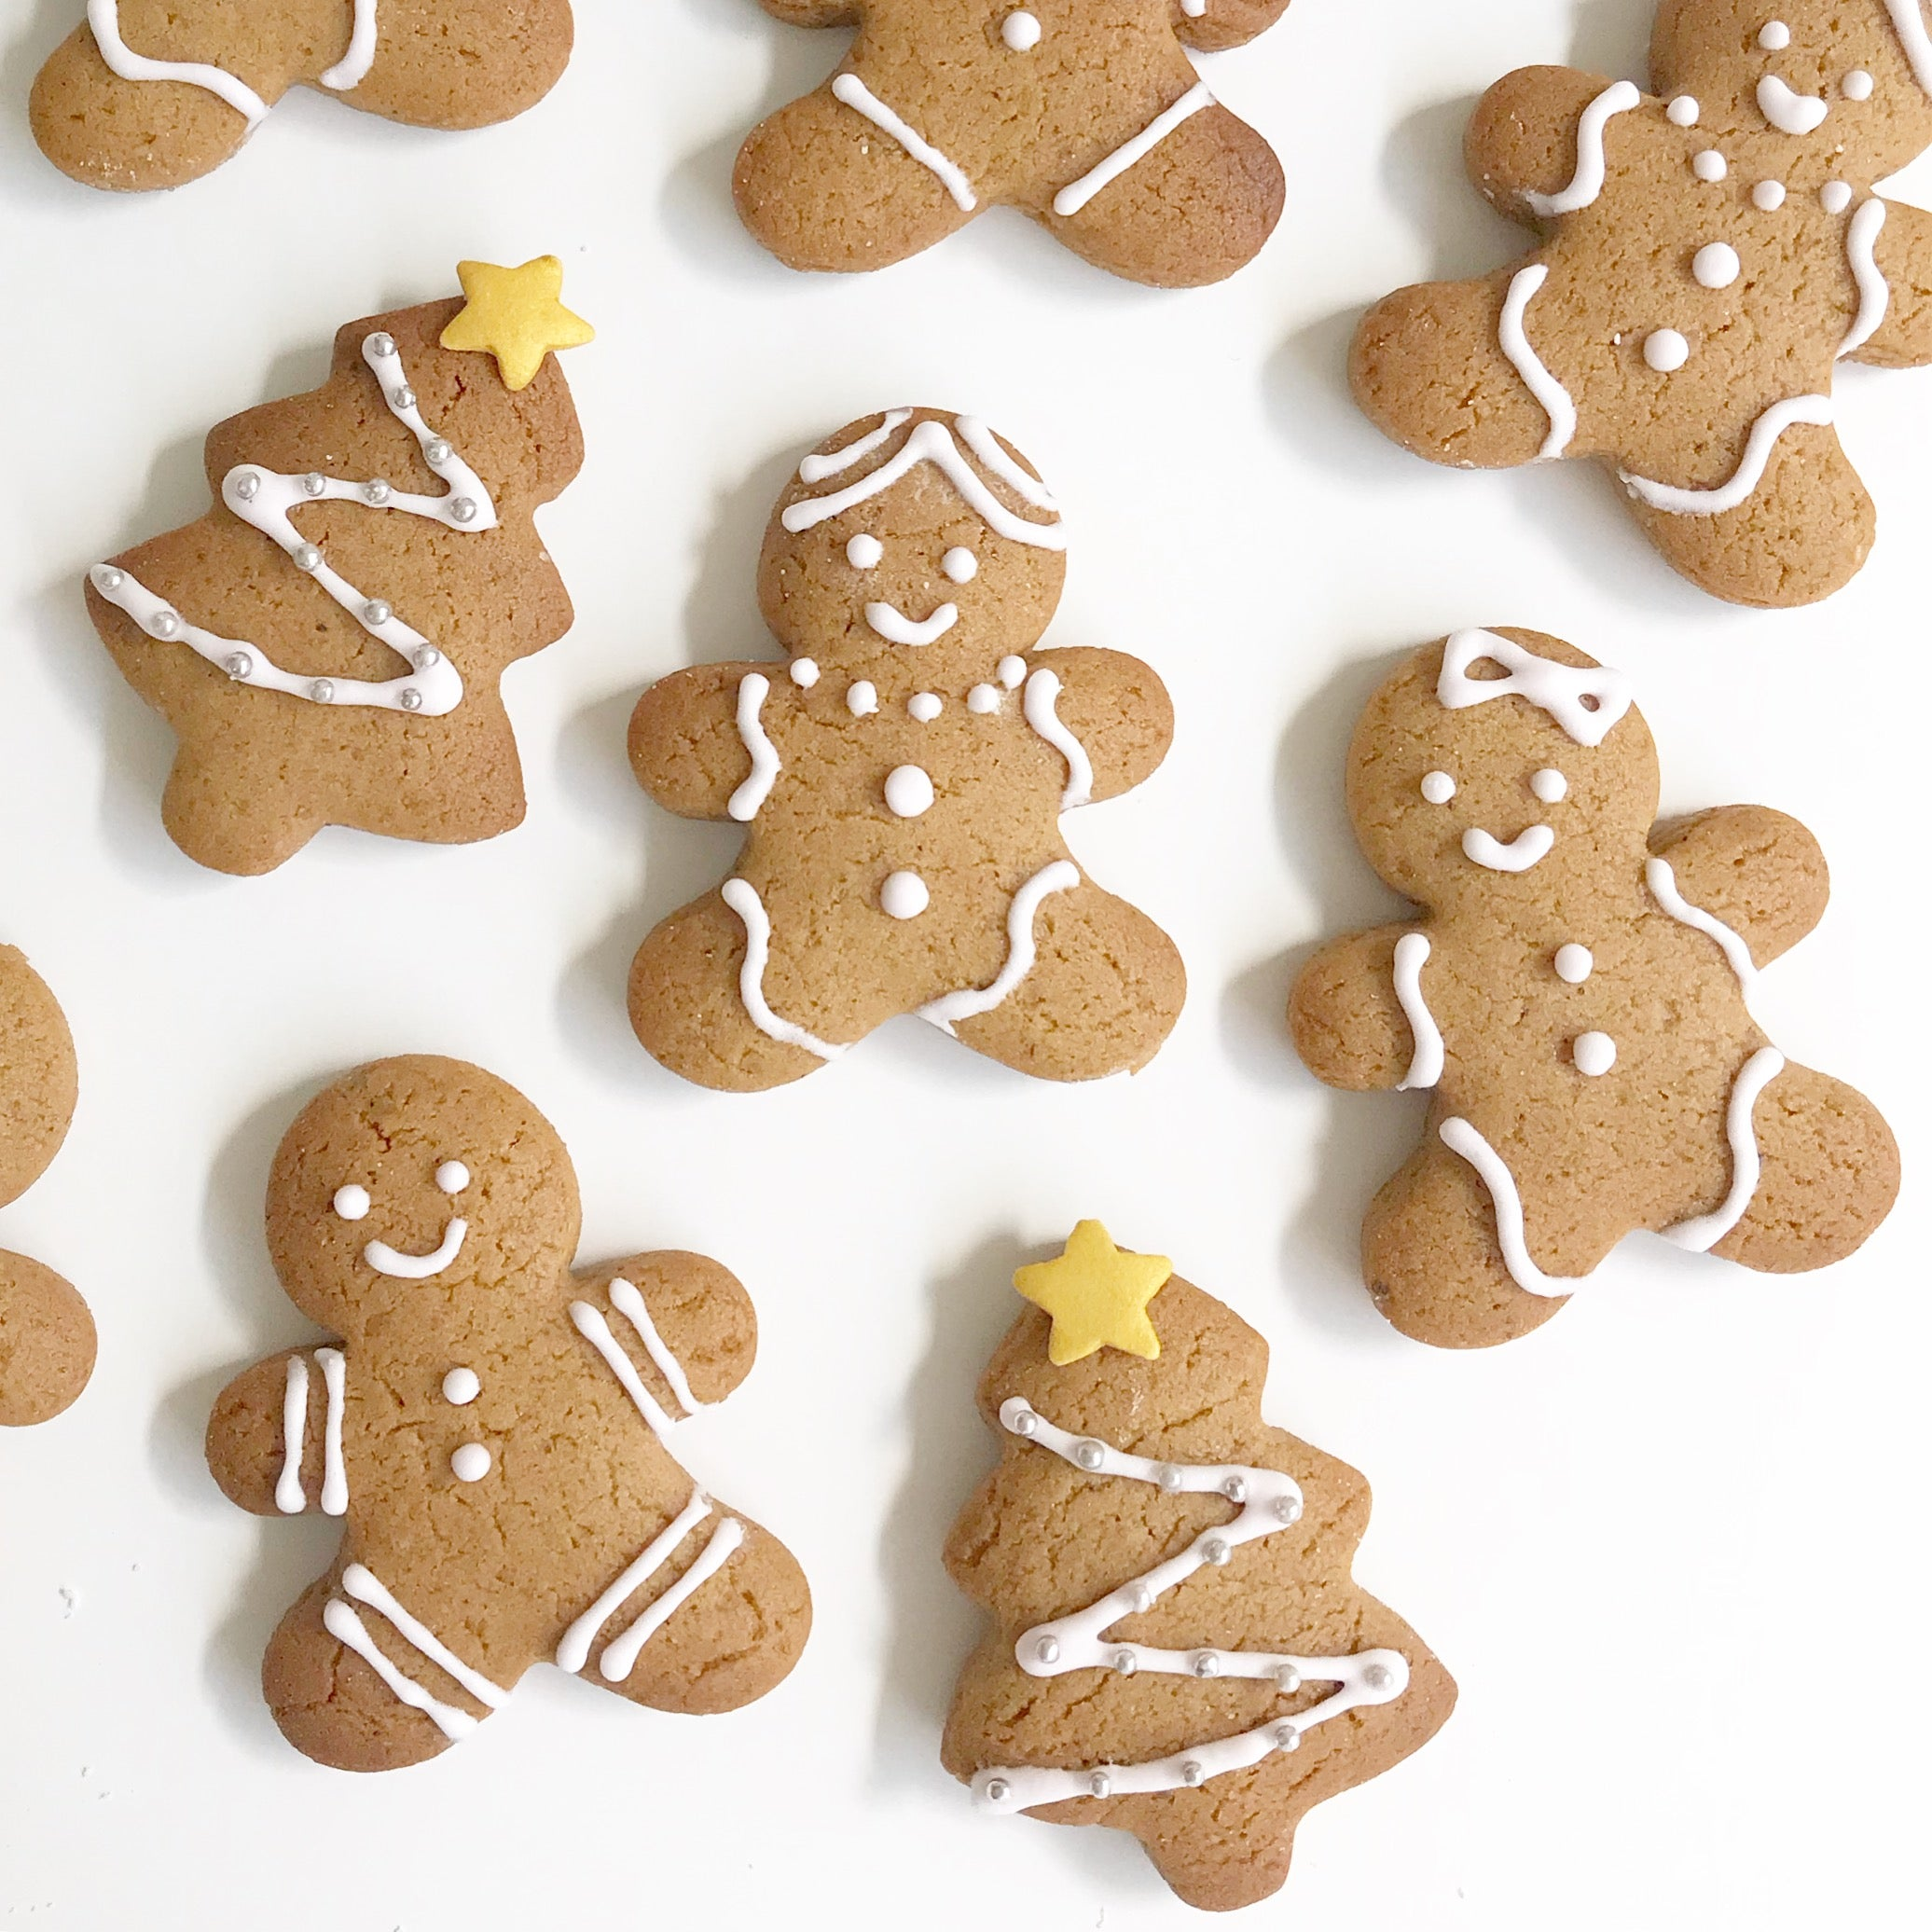 Gingerbread Man | Lazy Baking Studio | Christmas Baking | Hong Kong